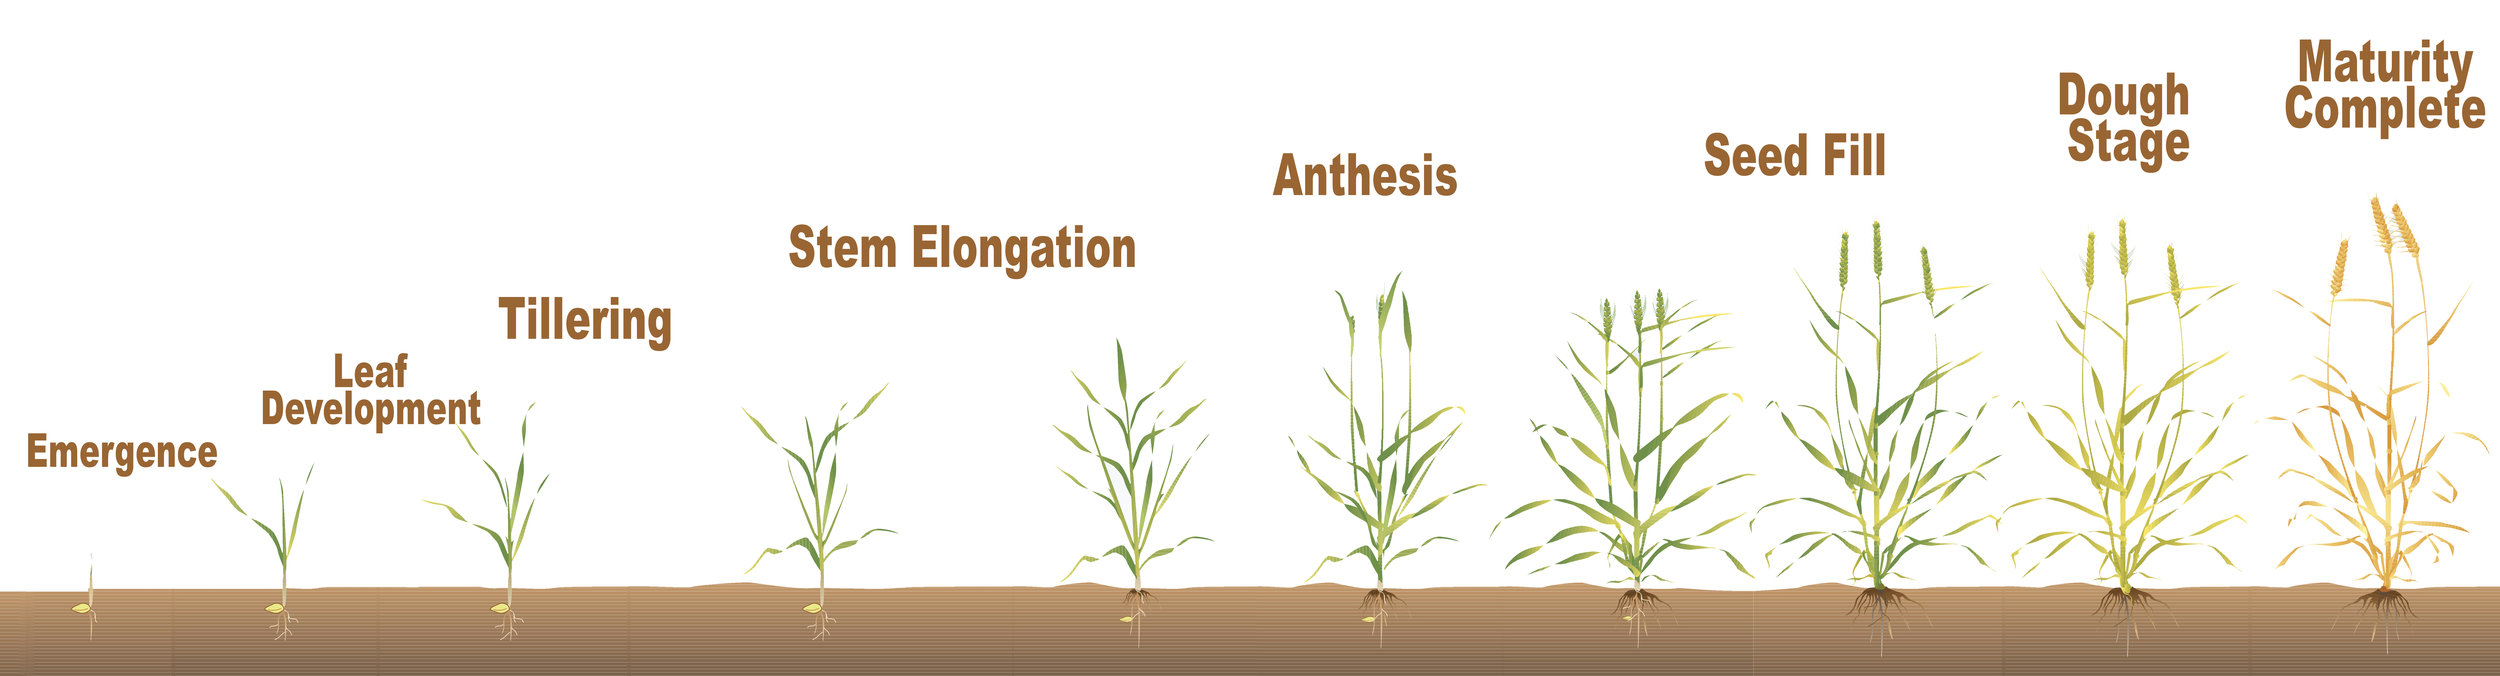 Graphic Source: Adapted from Grain Research & Development Corporation, Cereal Growth Stages (2005)